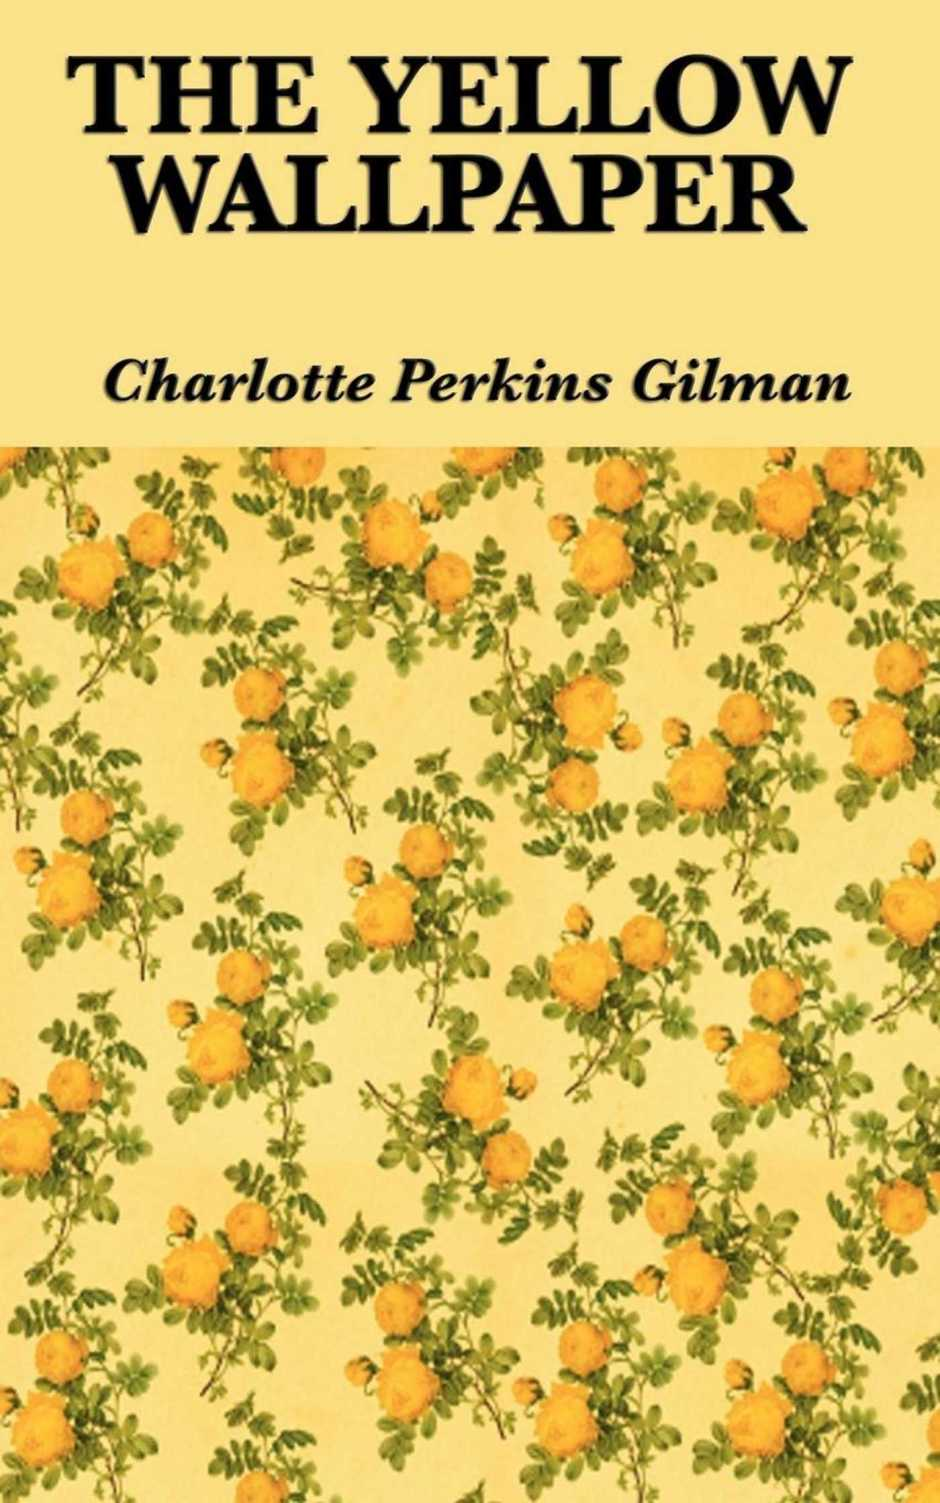 The Yellow Wallpaper eBook by Charlotte Perkins Gilman | Official ...